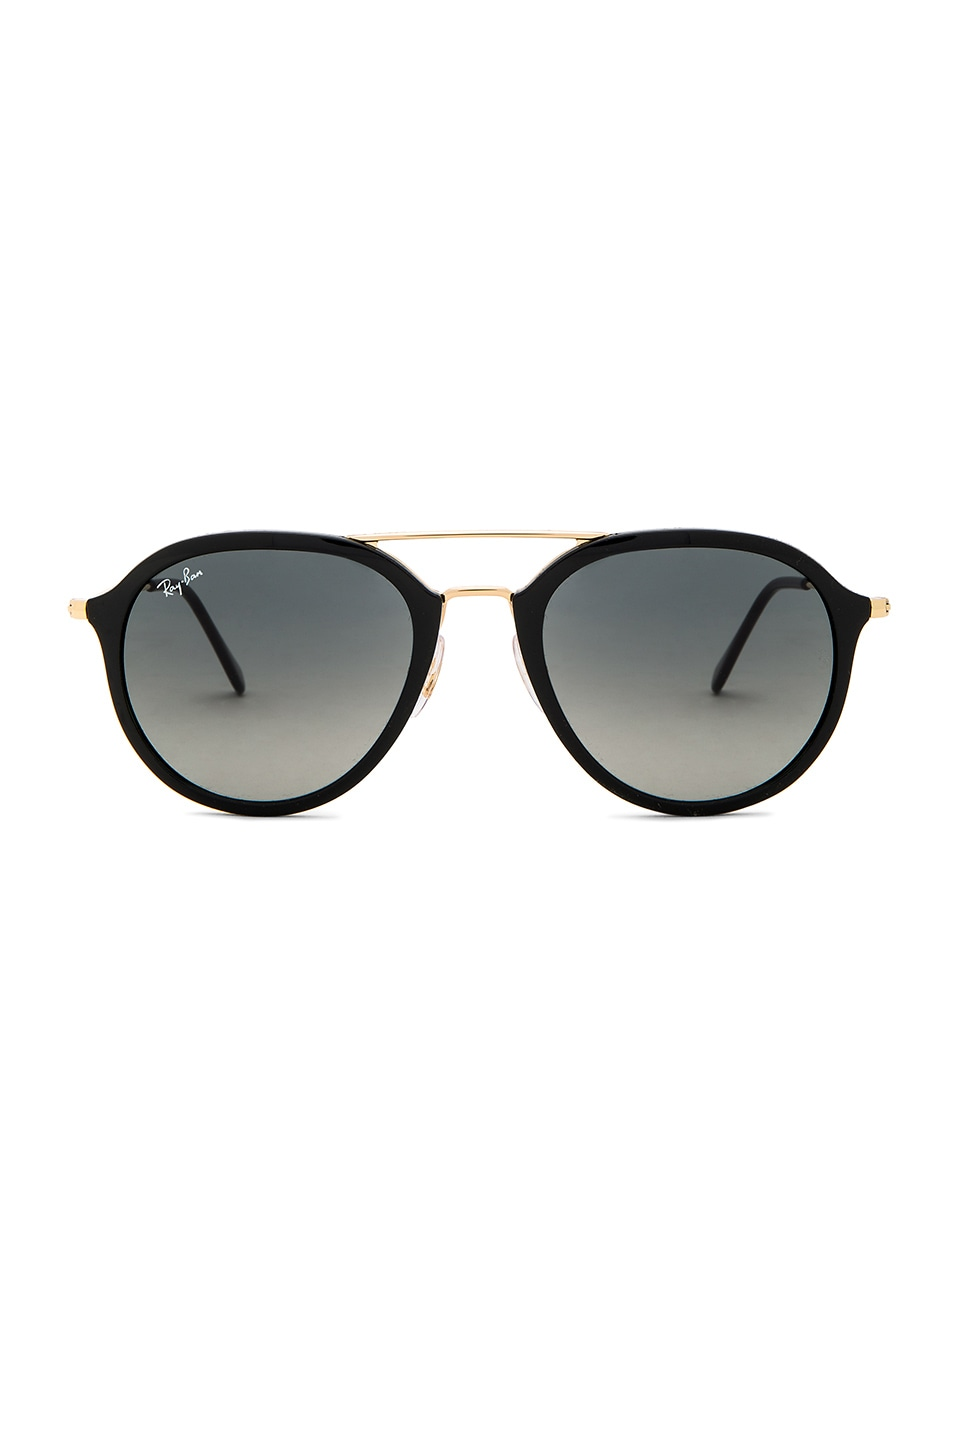 Ray-Ban Double Bridge Aviator in Black & Grey Gradiant